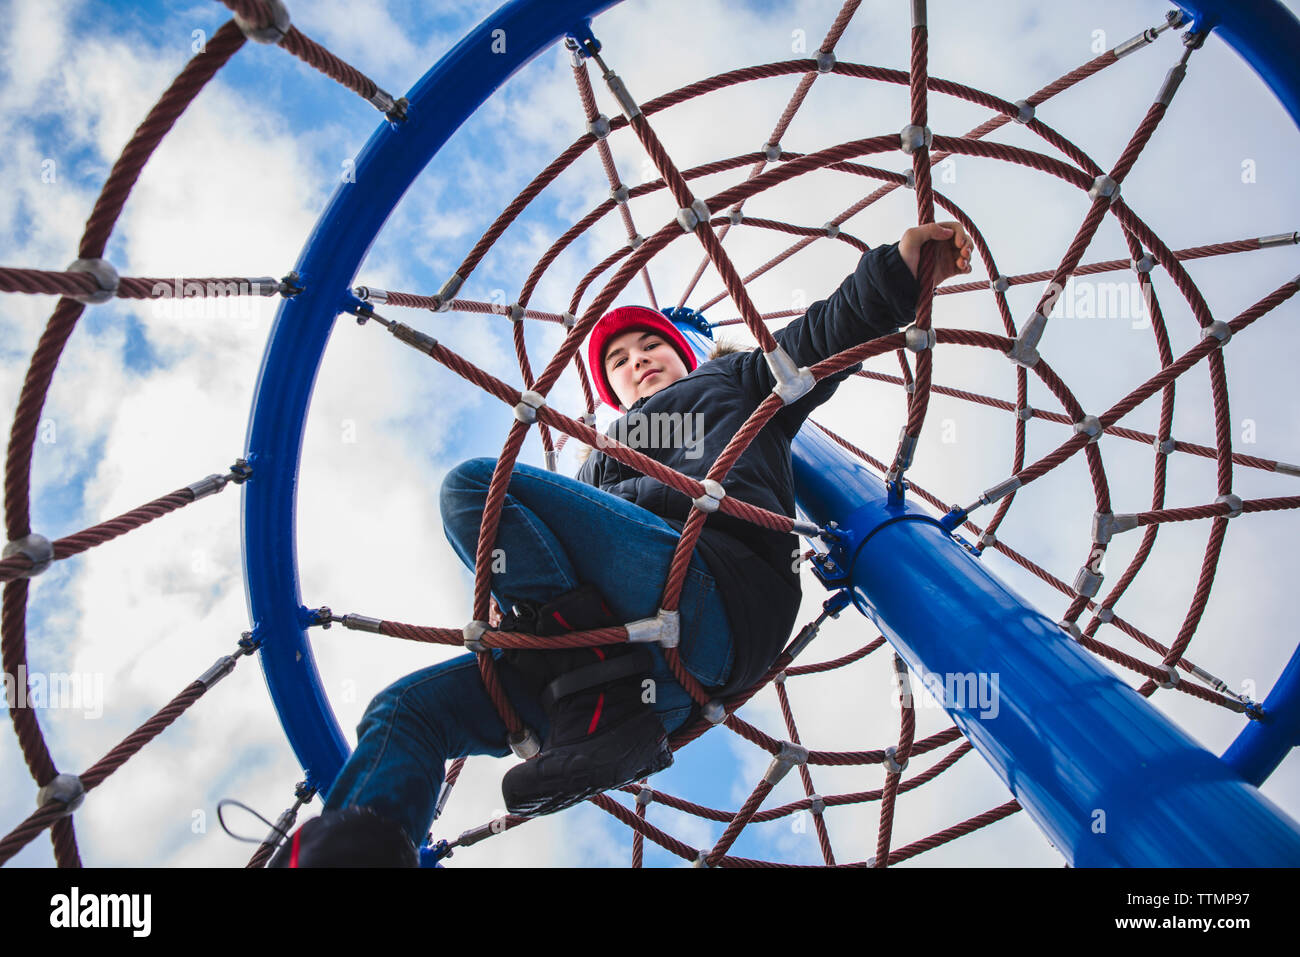 Low angle portrait of boy climbing merry-go-round against cloudy sky - Stock Image